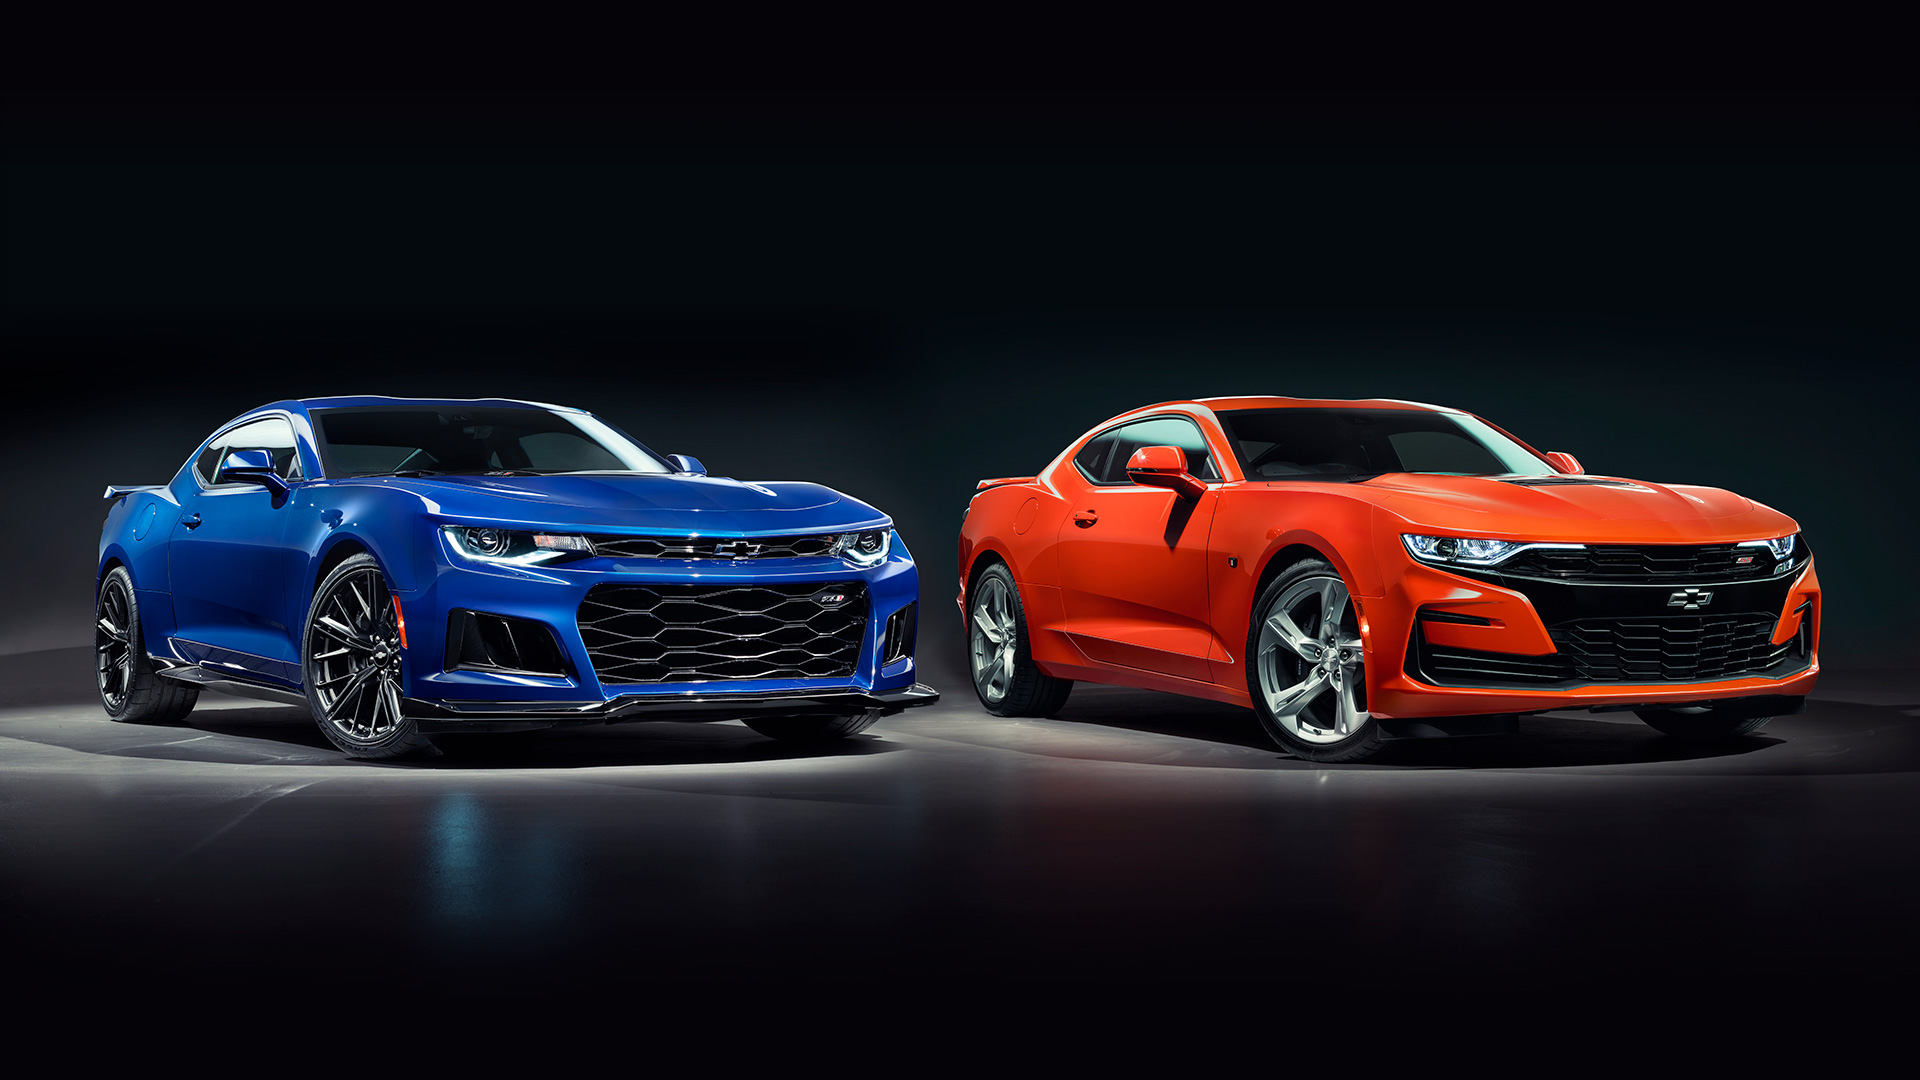 Chevrolet Camaro ZL1 (L) and Chevrolet Camaro 2SS (R).